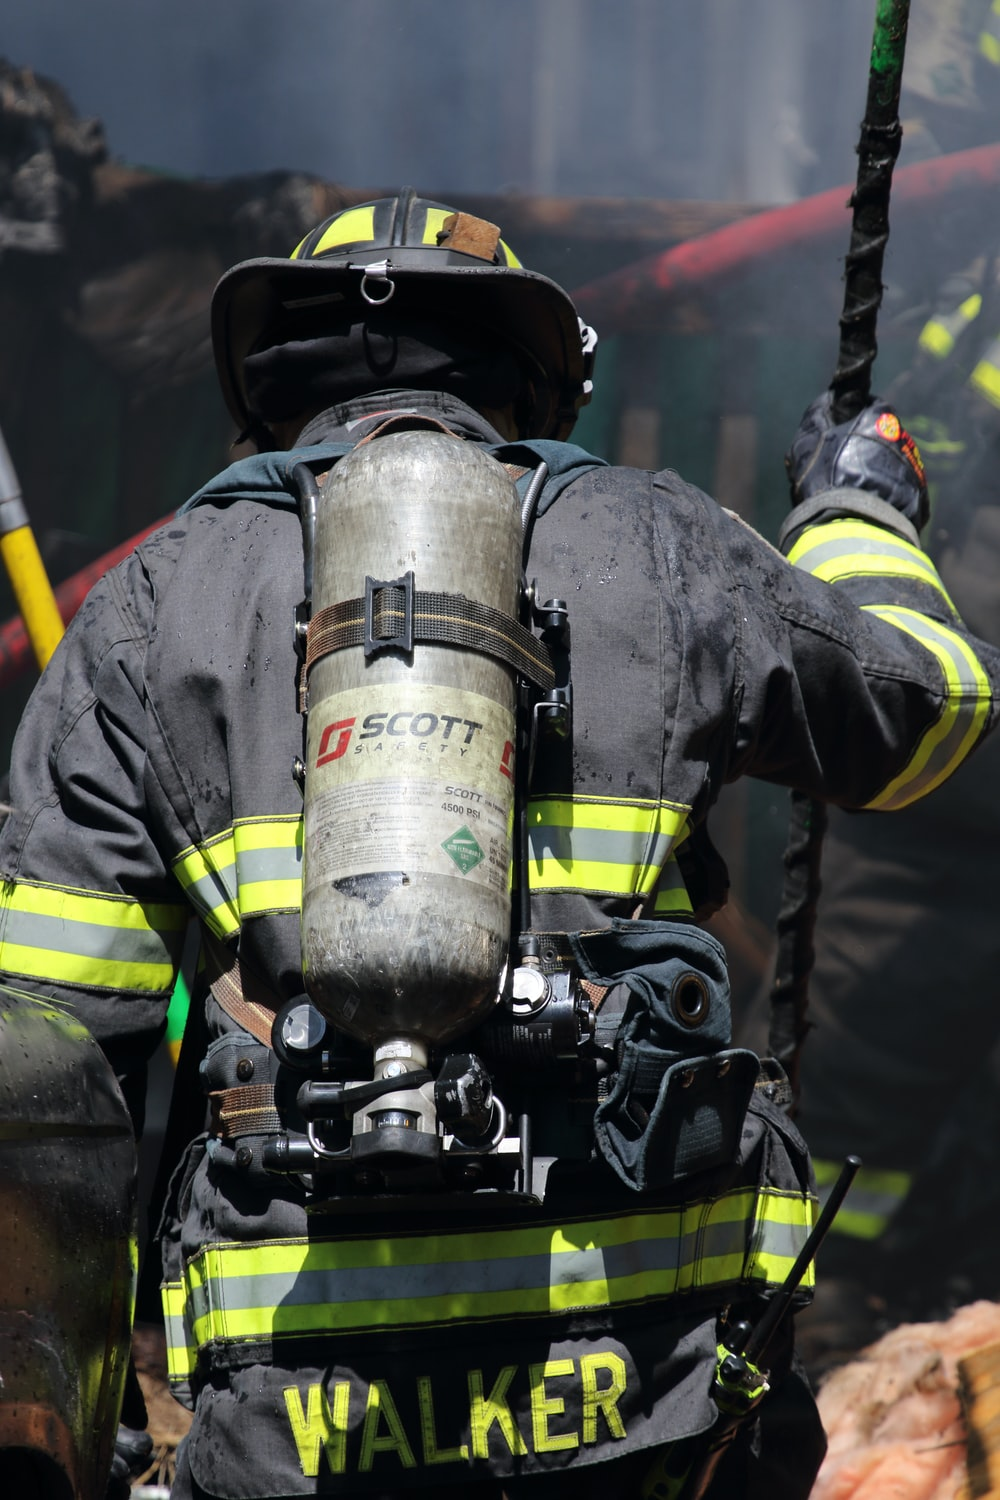 shallow focus photo of firefighter